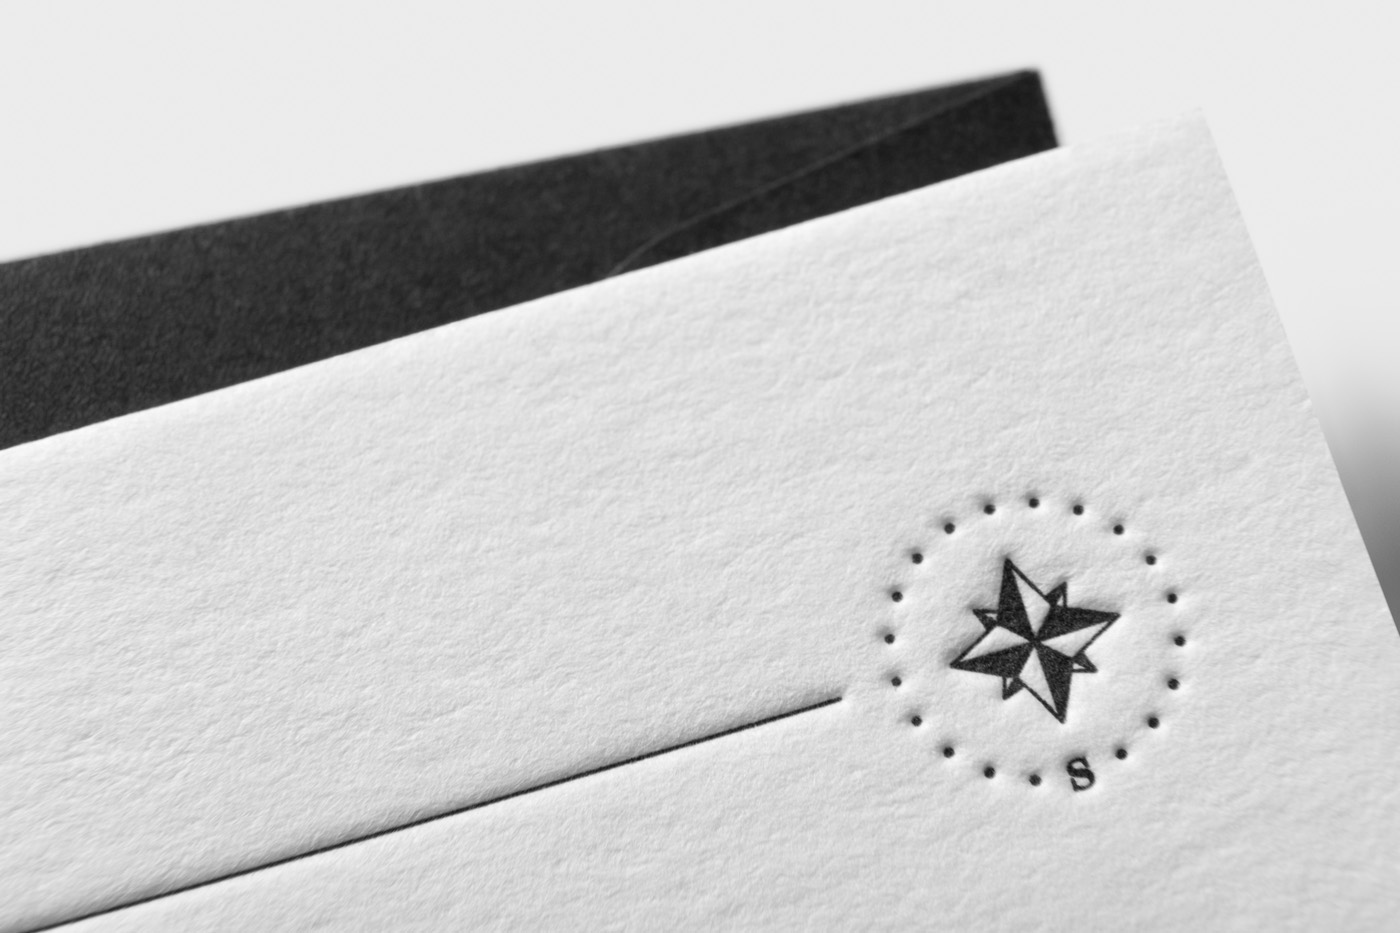 With compliments cards letterpress printed for Shantanu Starick on Wild 1